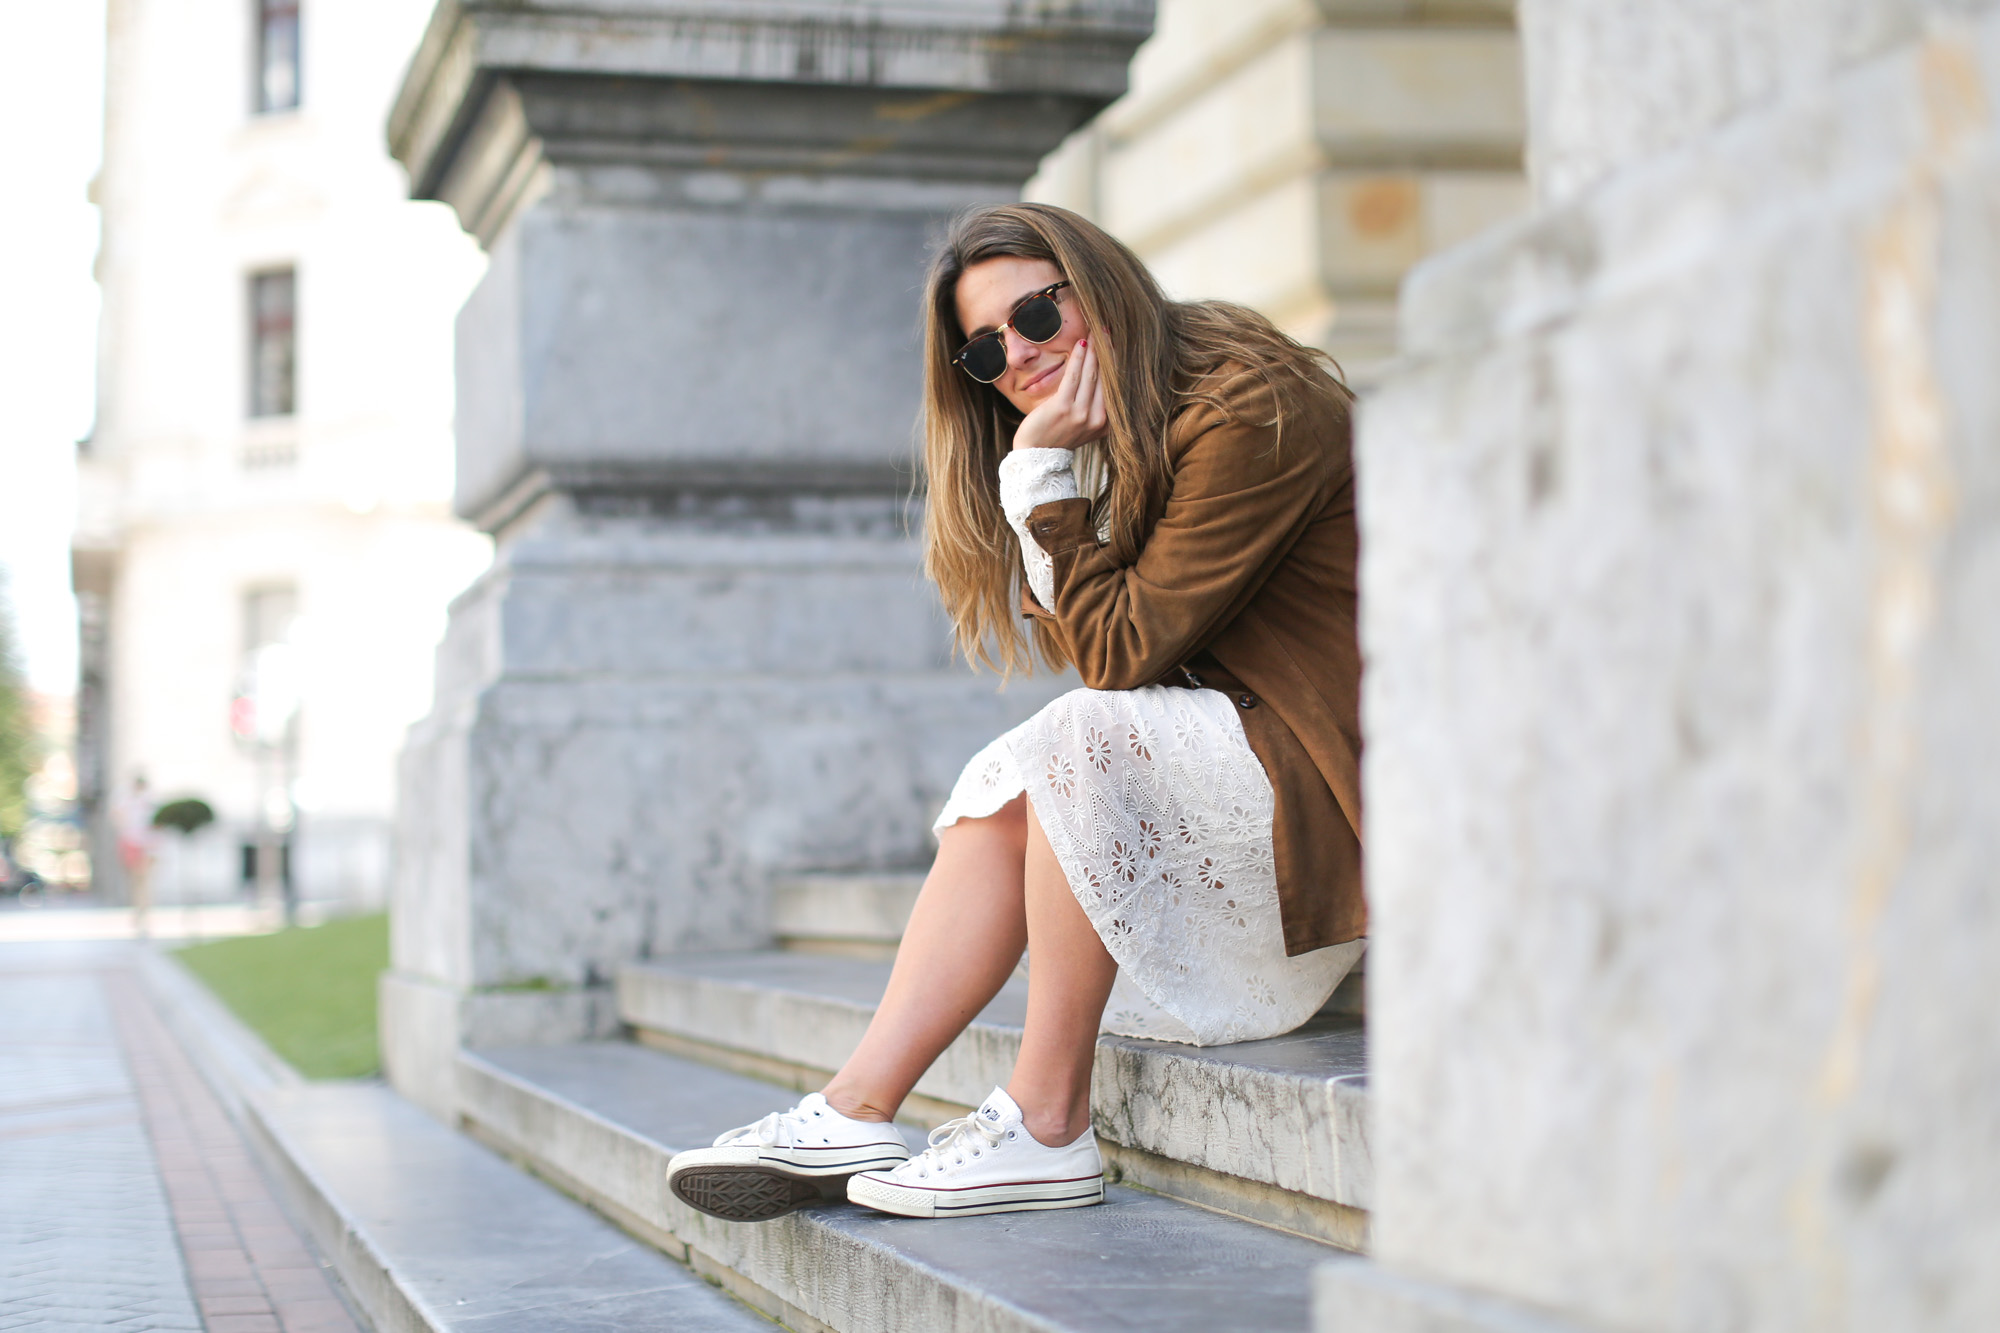 Clochet-streetstyle-zara-white-midi-embroidered-dress-with-full-skirt-suede-vintage-jacket-8